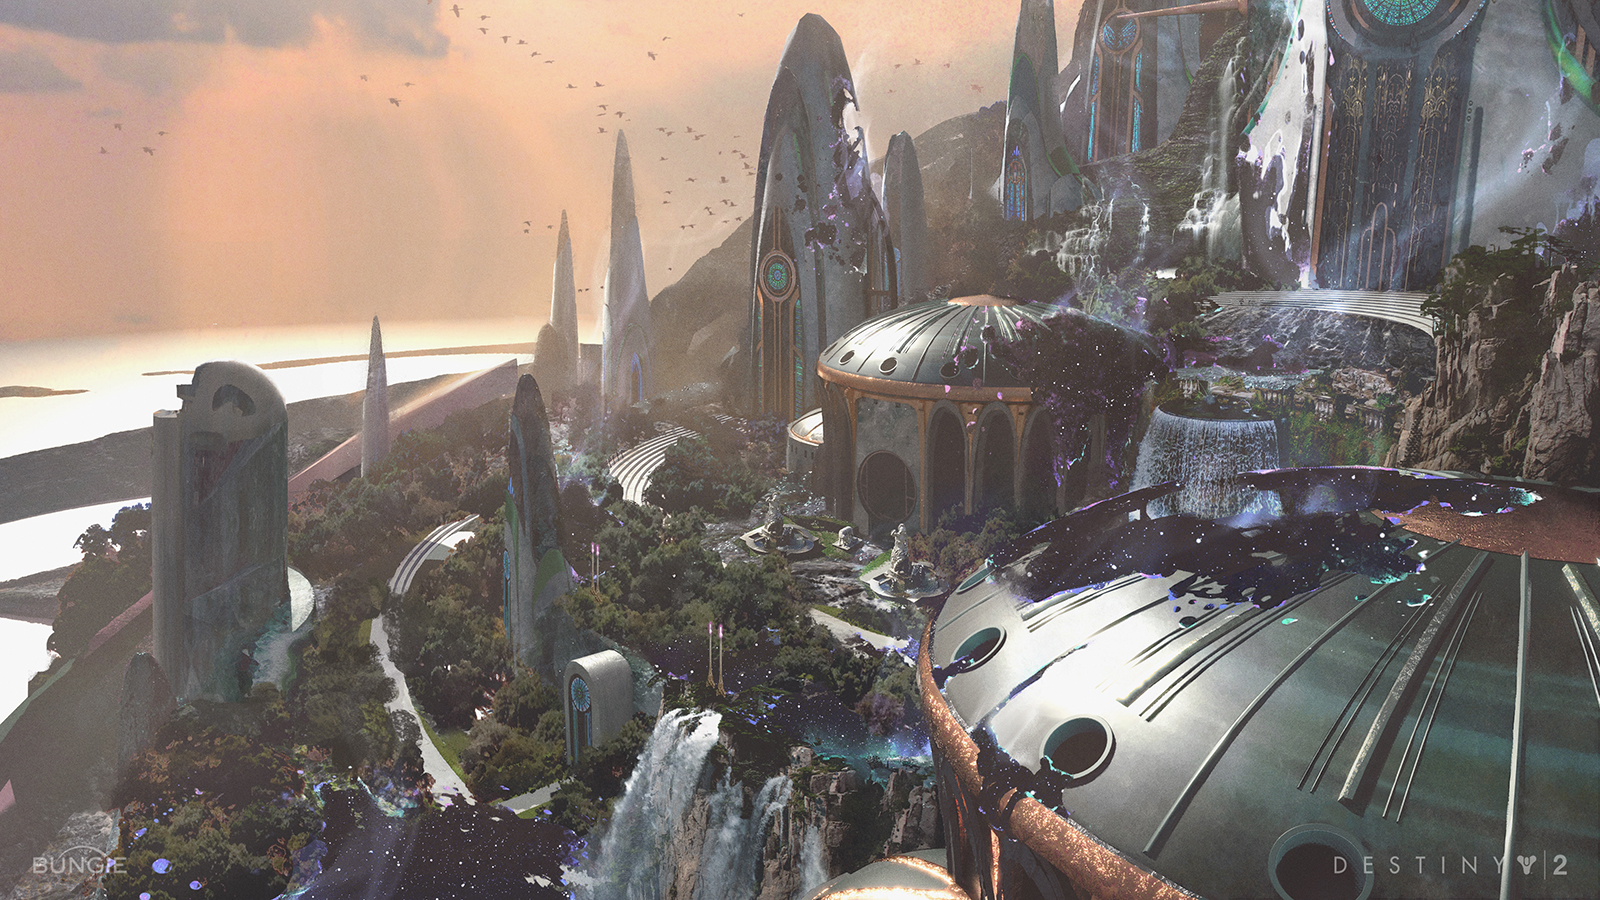 Dreaming_City_Mid_High_View_SungChoi_1600px.jpg